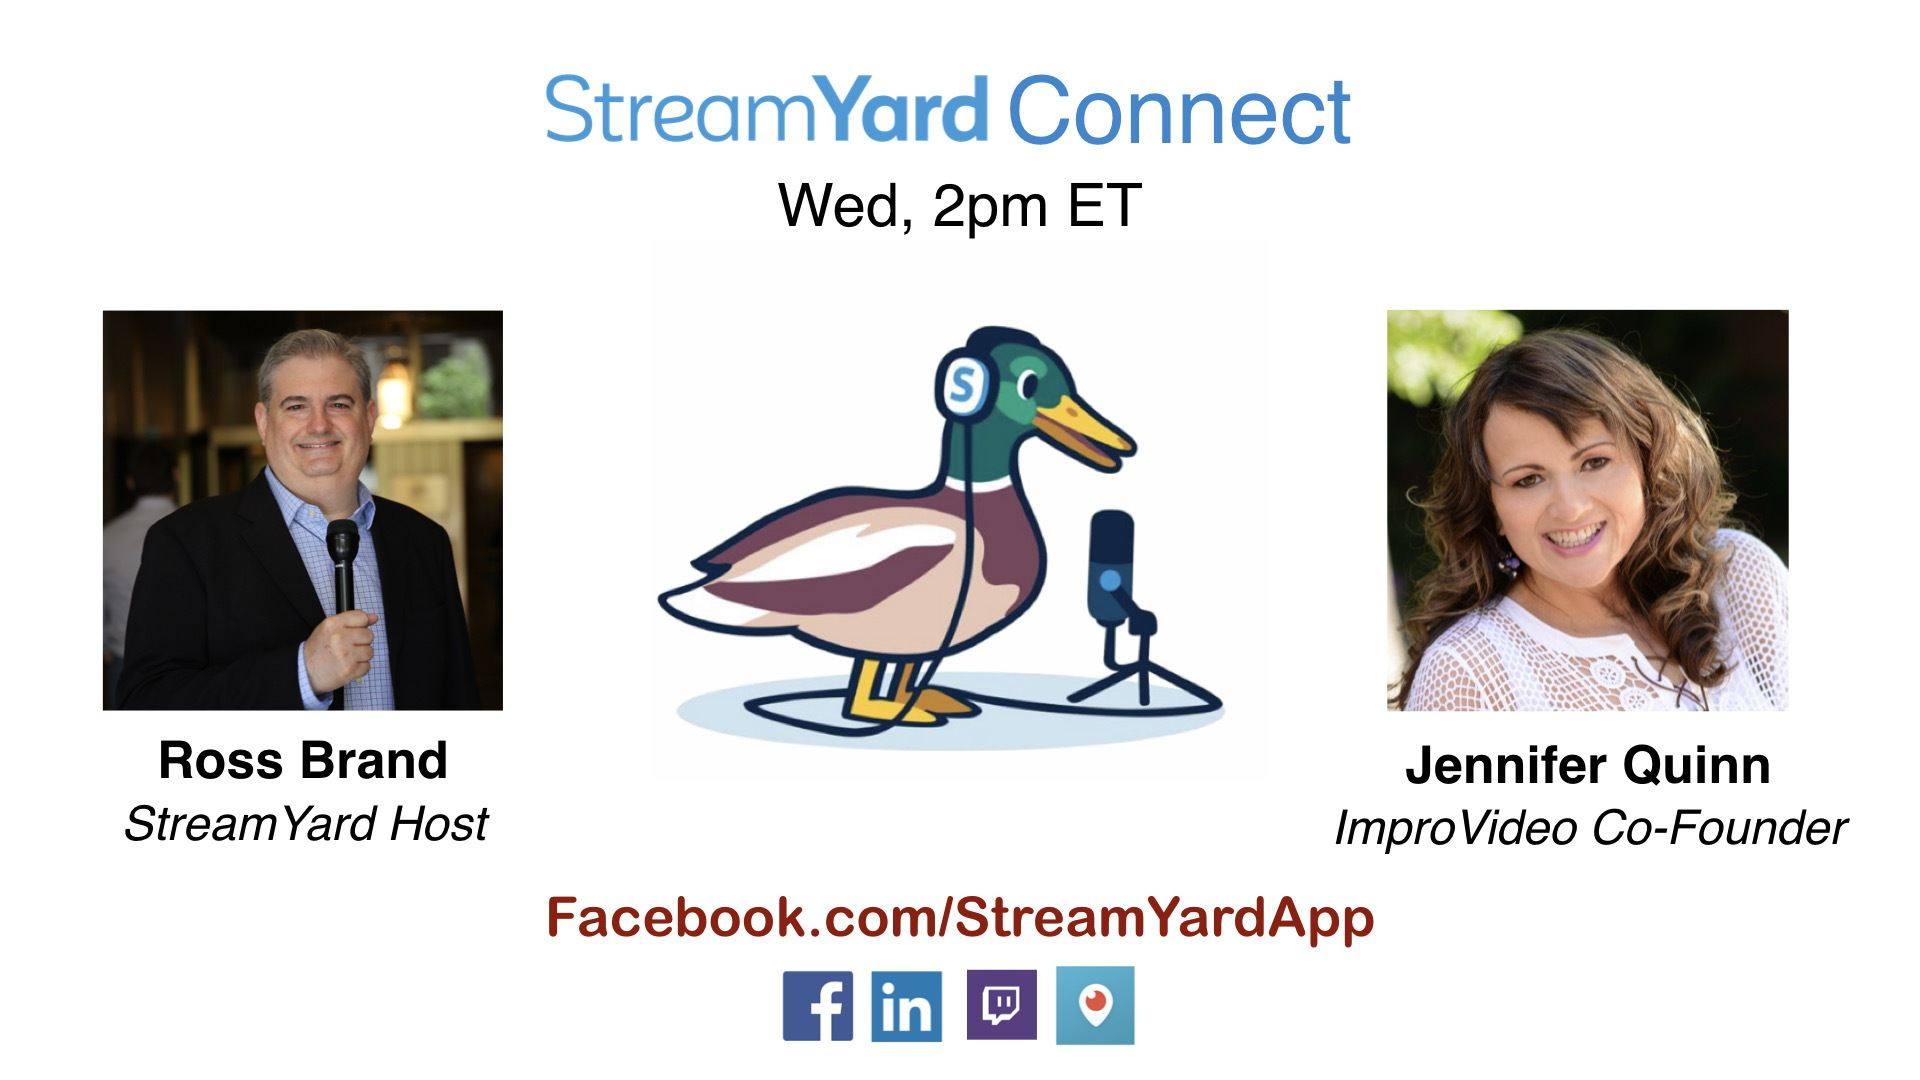 streamyard connect with ross brand ep22 jennifer quinn jennyq